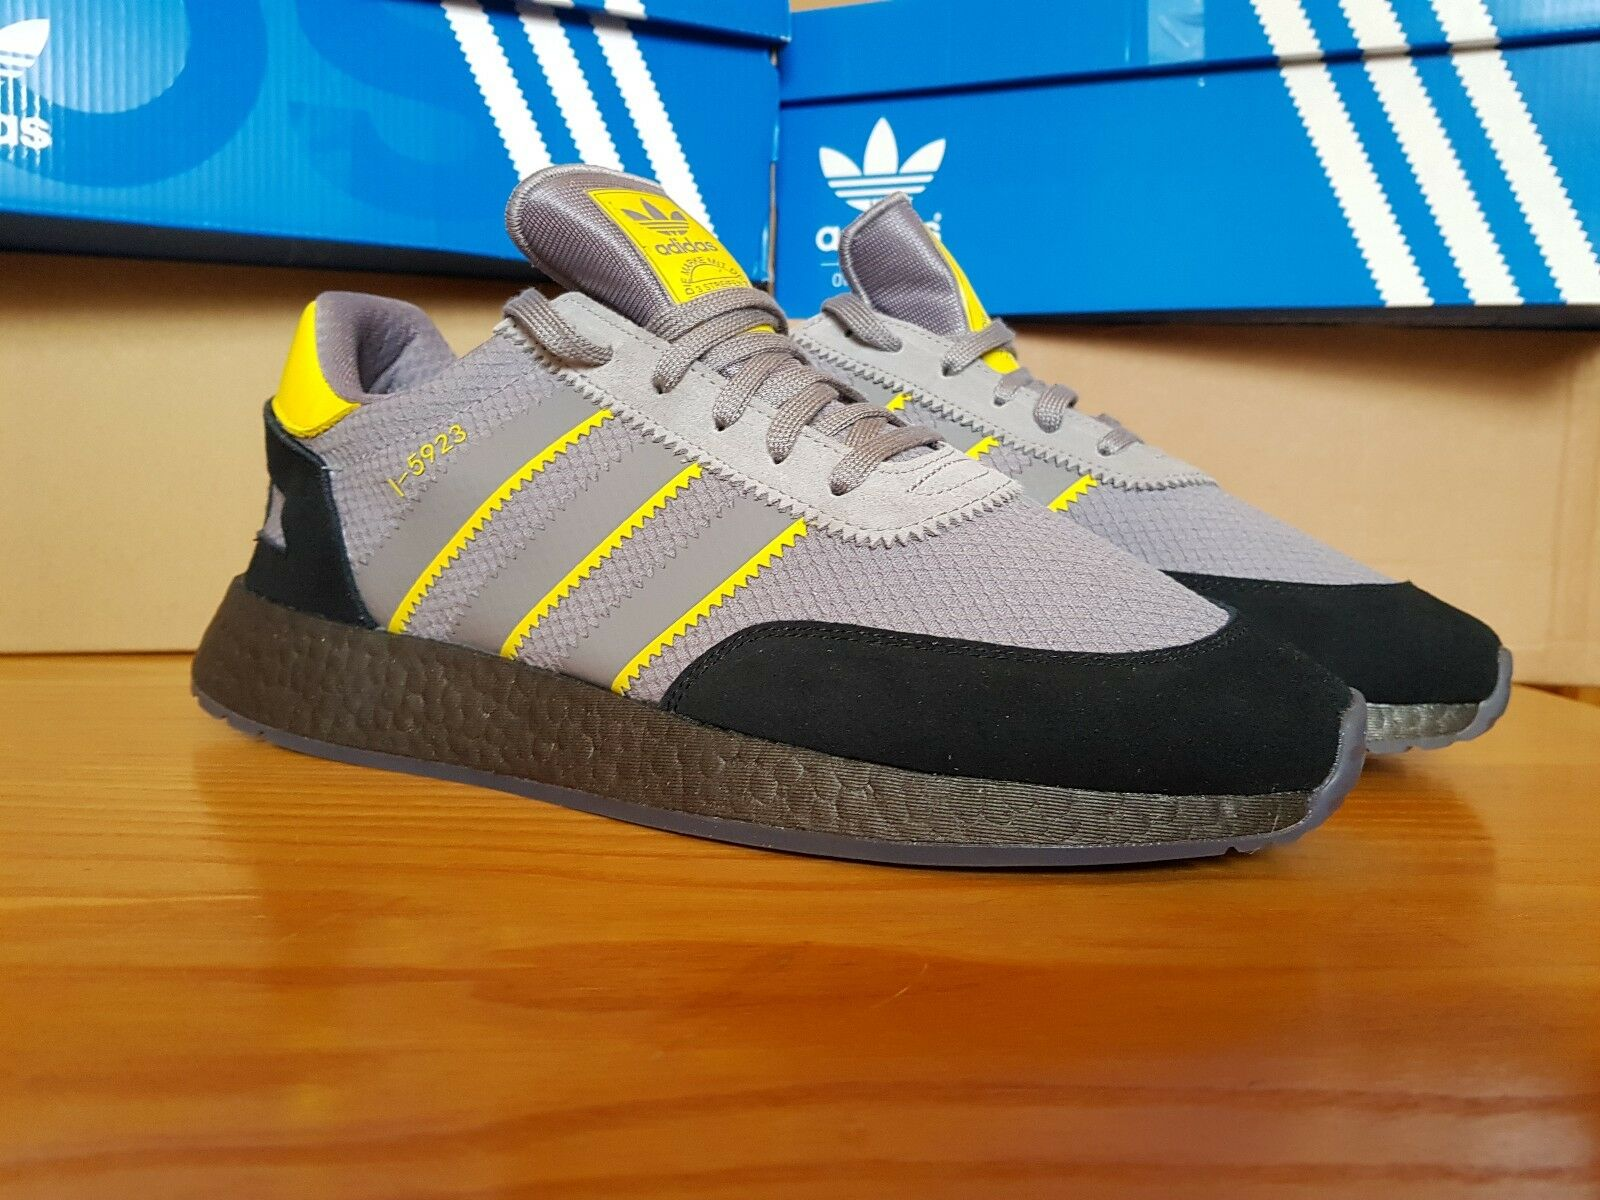 ADIDAS I-5923 MANCHESTER SHOWERS UK11 DEADSTOCK IN-HAND RARE SOLD-OUT BNIB